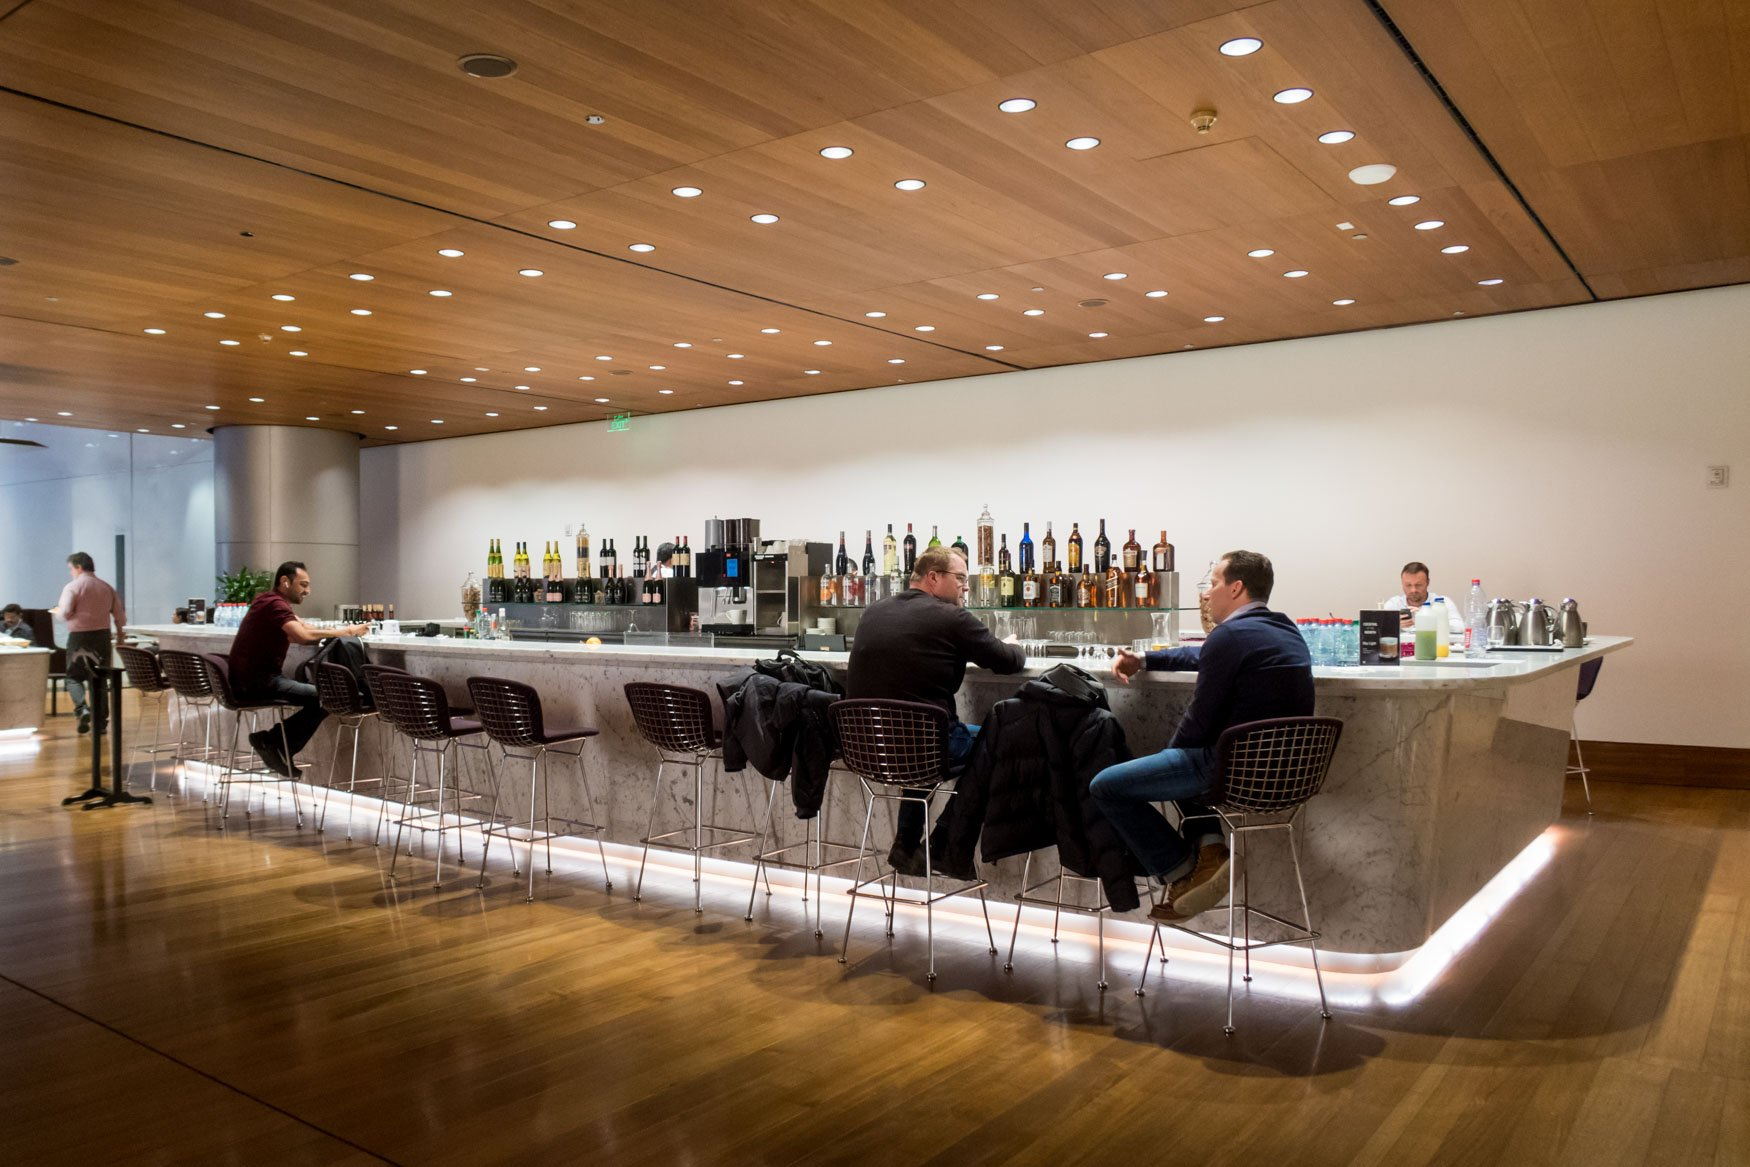 Qatar Airways Doha Lounge Bar